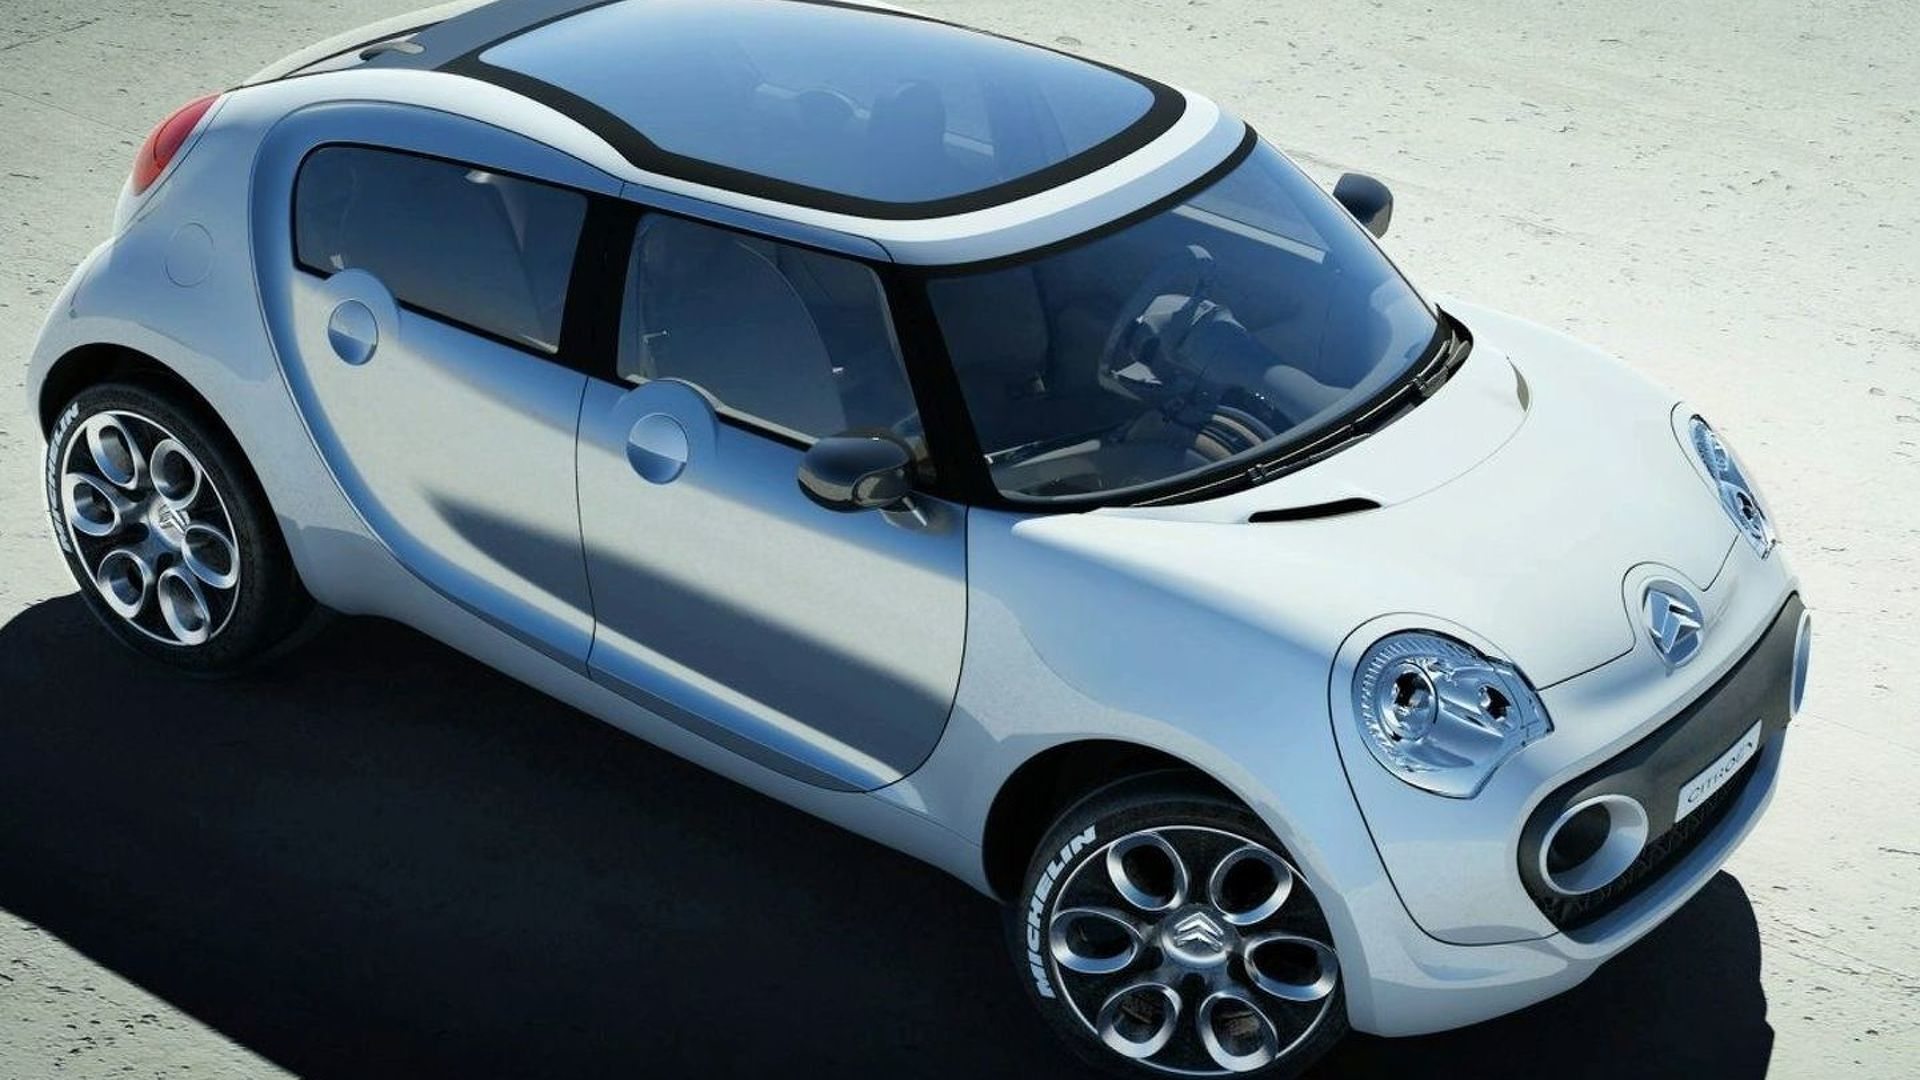 Citroën C3 successor to be inspired by the C-Cactus concept - report